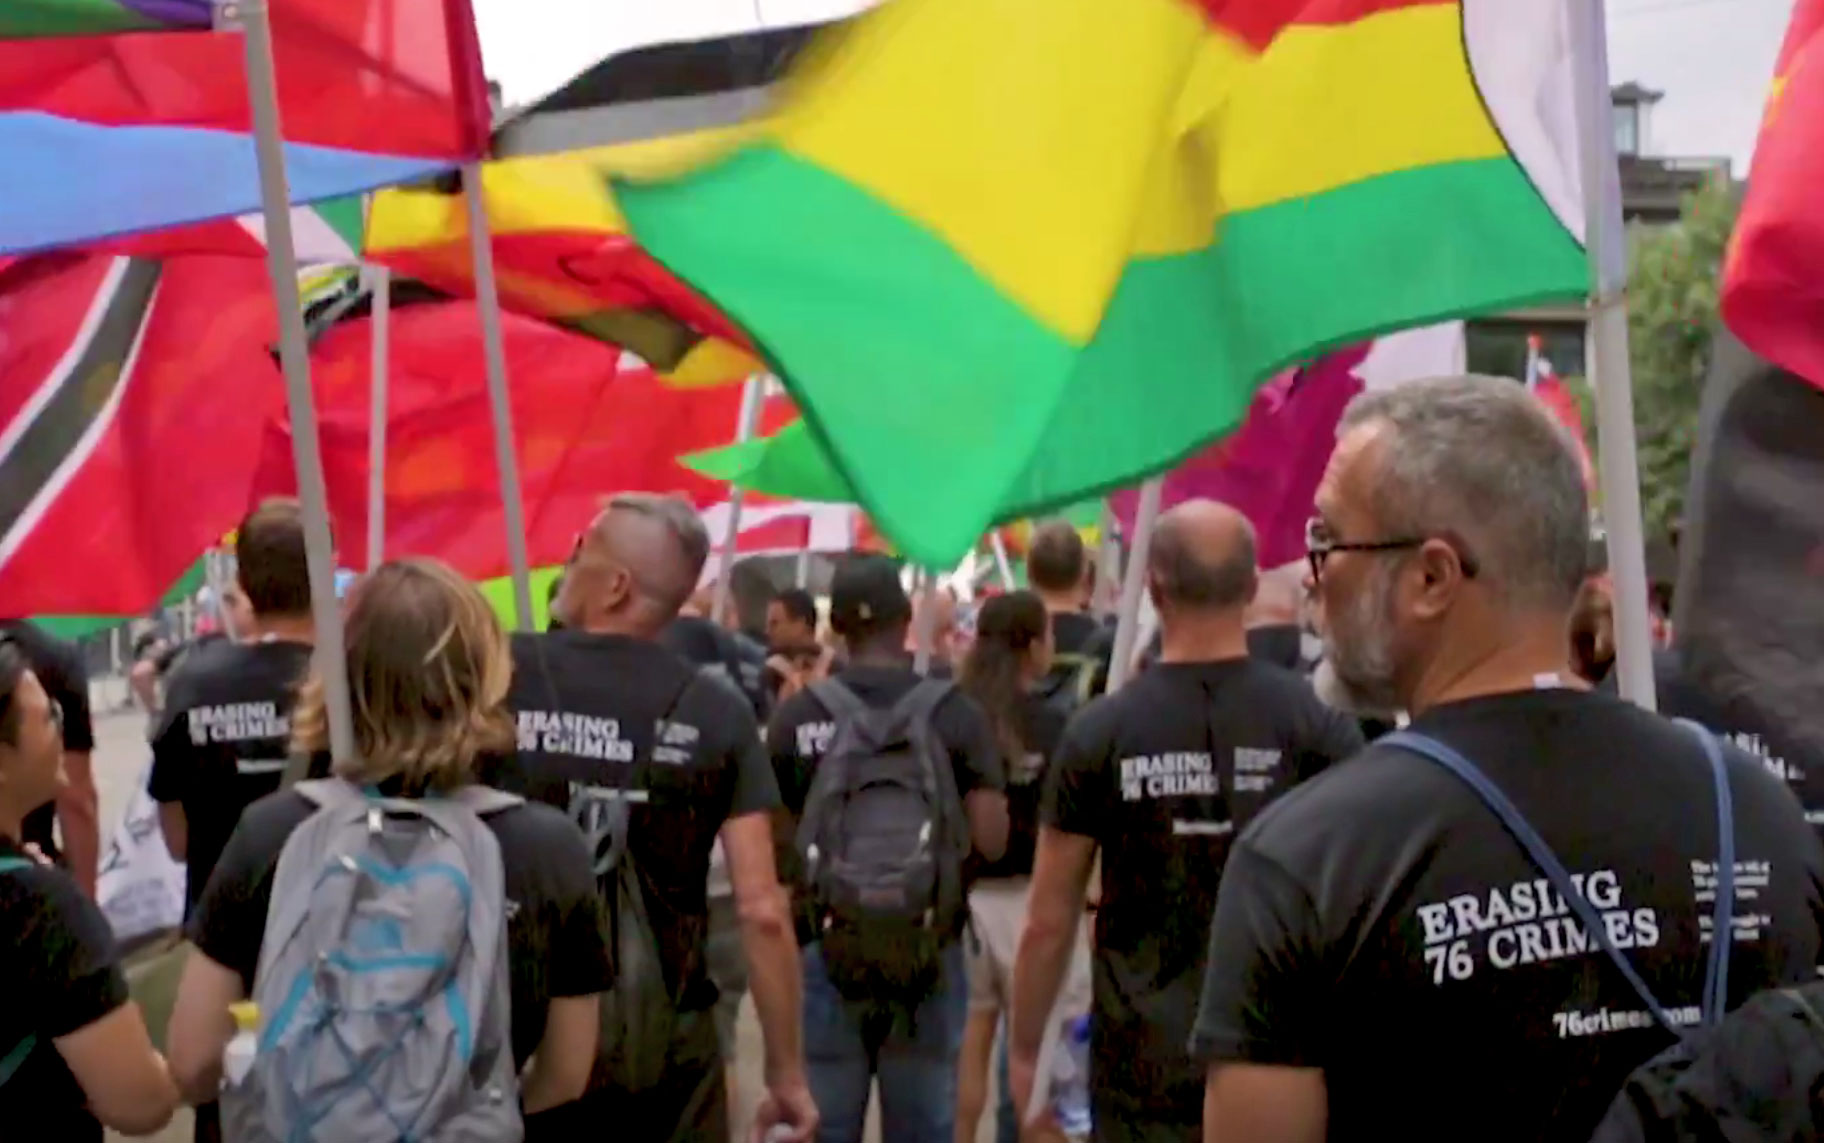 During Amsterdam Pride 2018, marchers in Erasing 76 Crimes t-shirts carried the flags of repressive nations to pressure them to repeal their anti-LGBT laws.